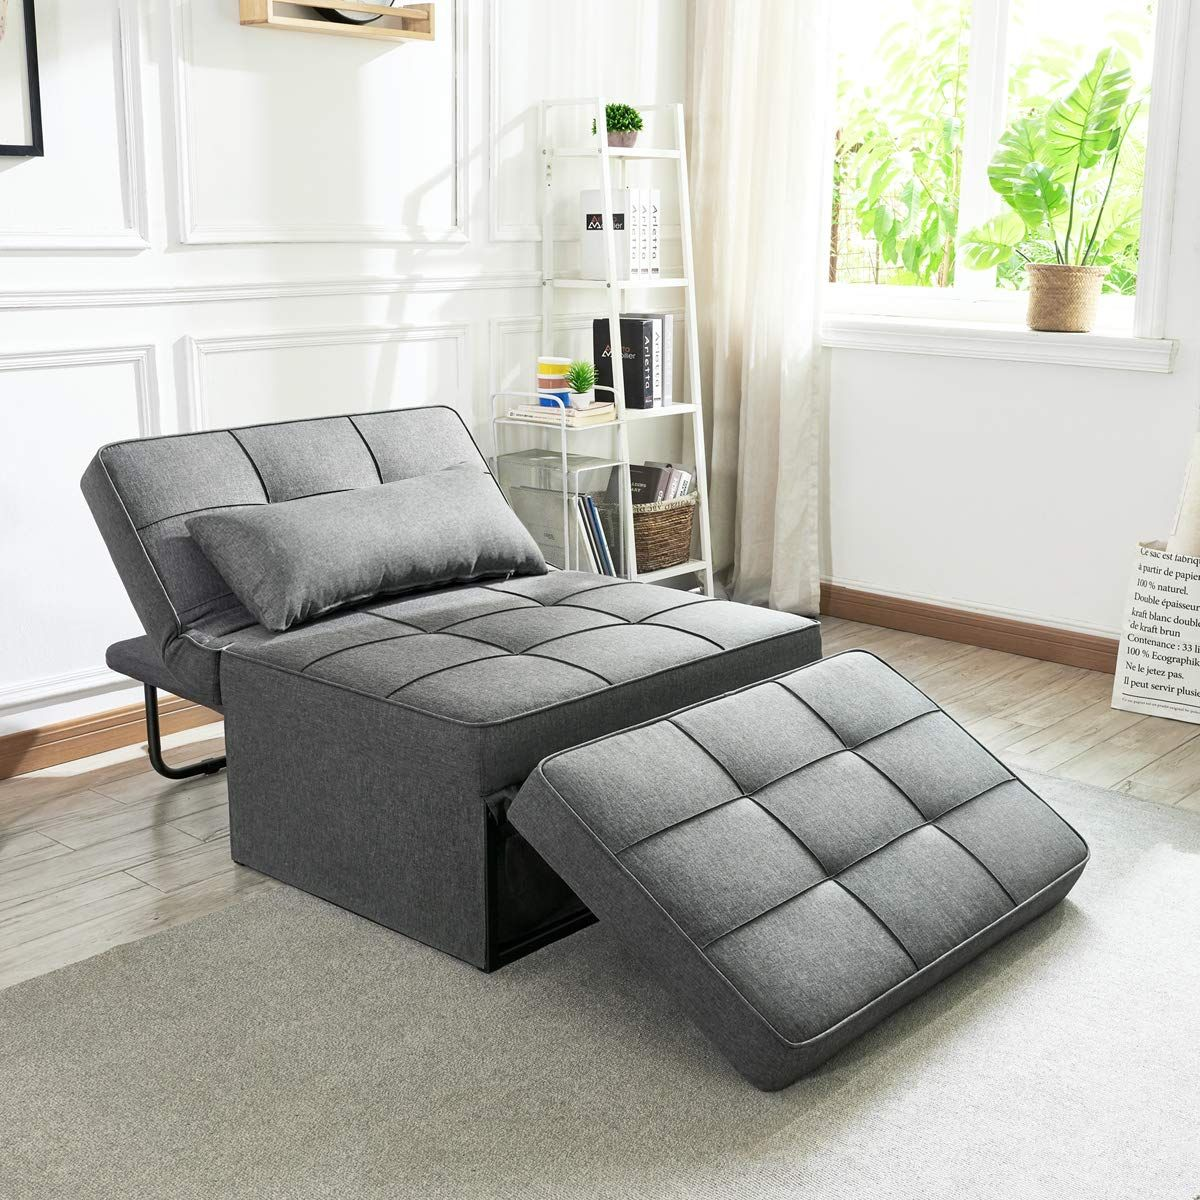 Vonanda Sofa Bed Folding Single Sleeper Chair Modern